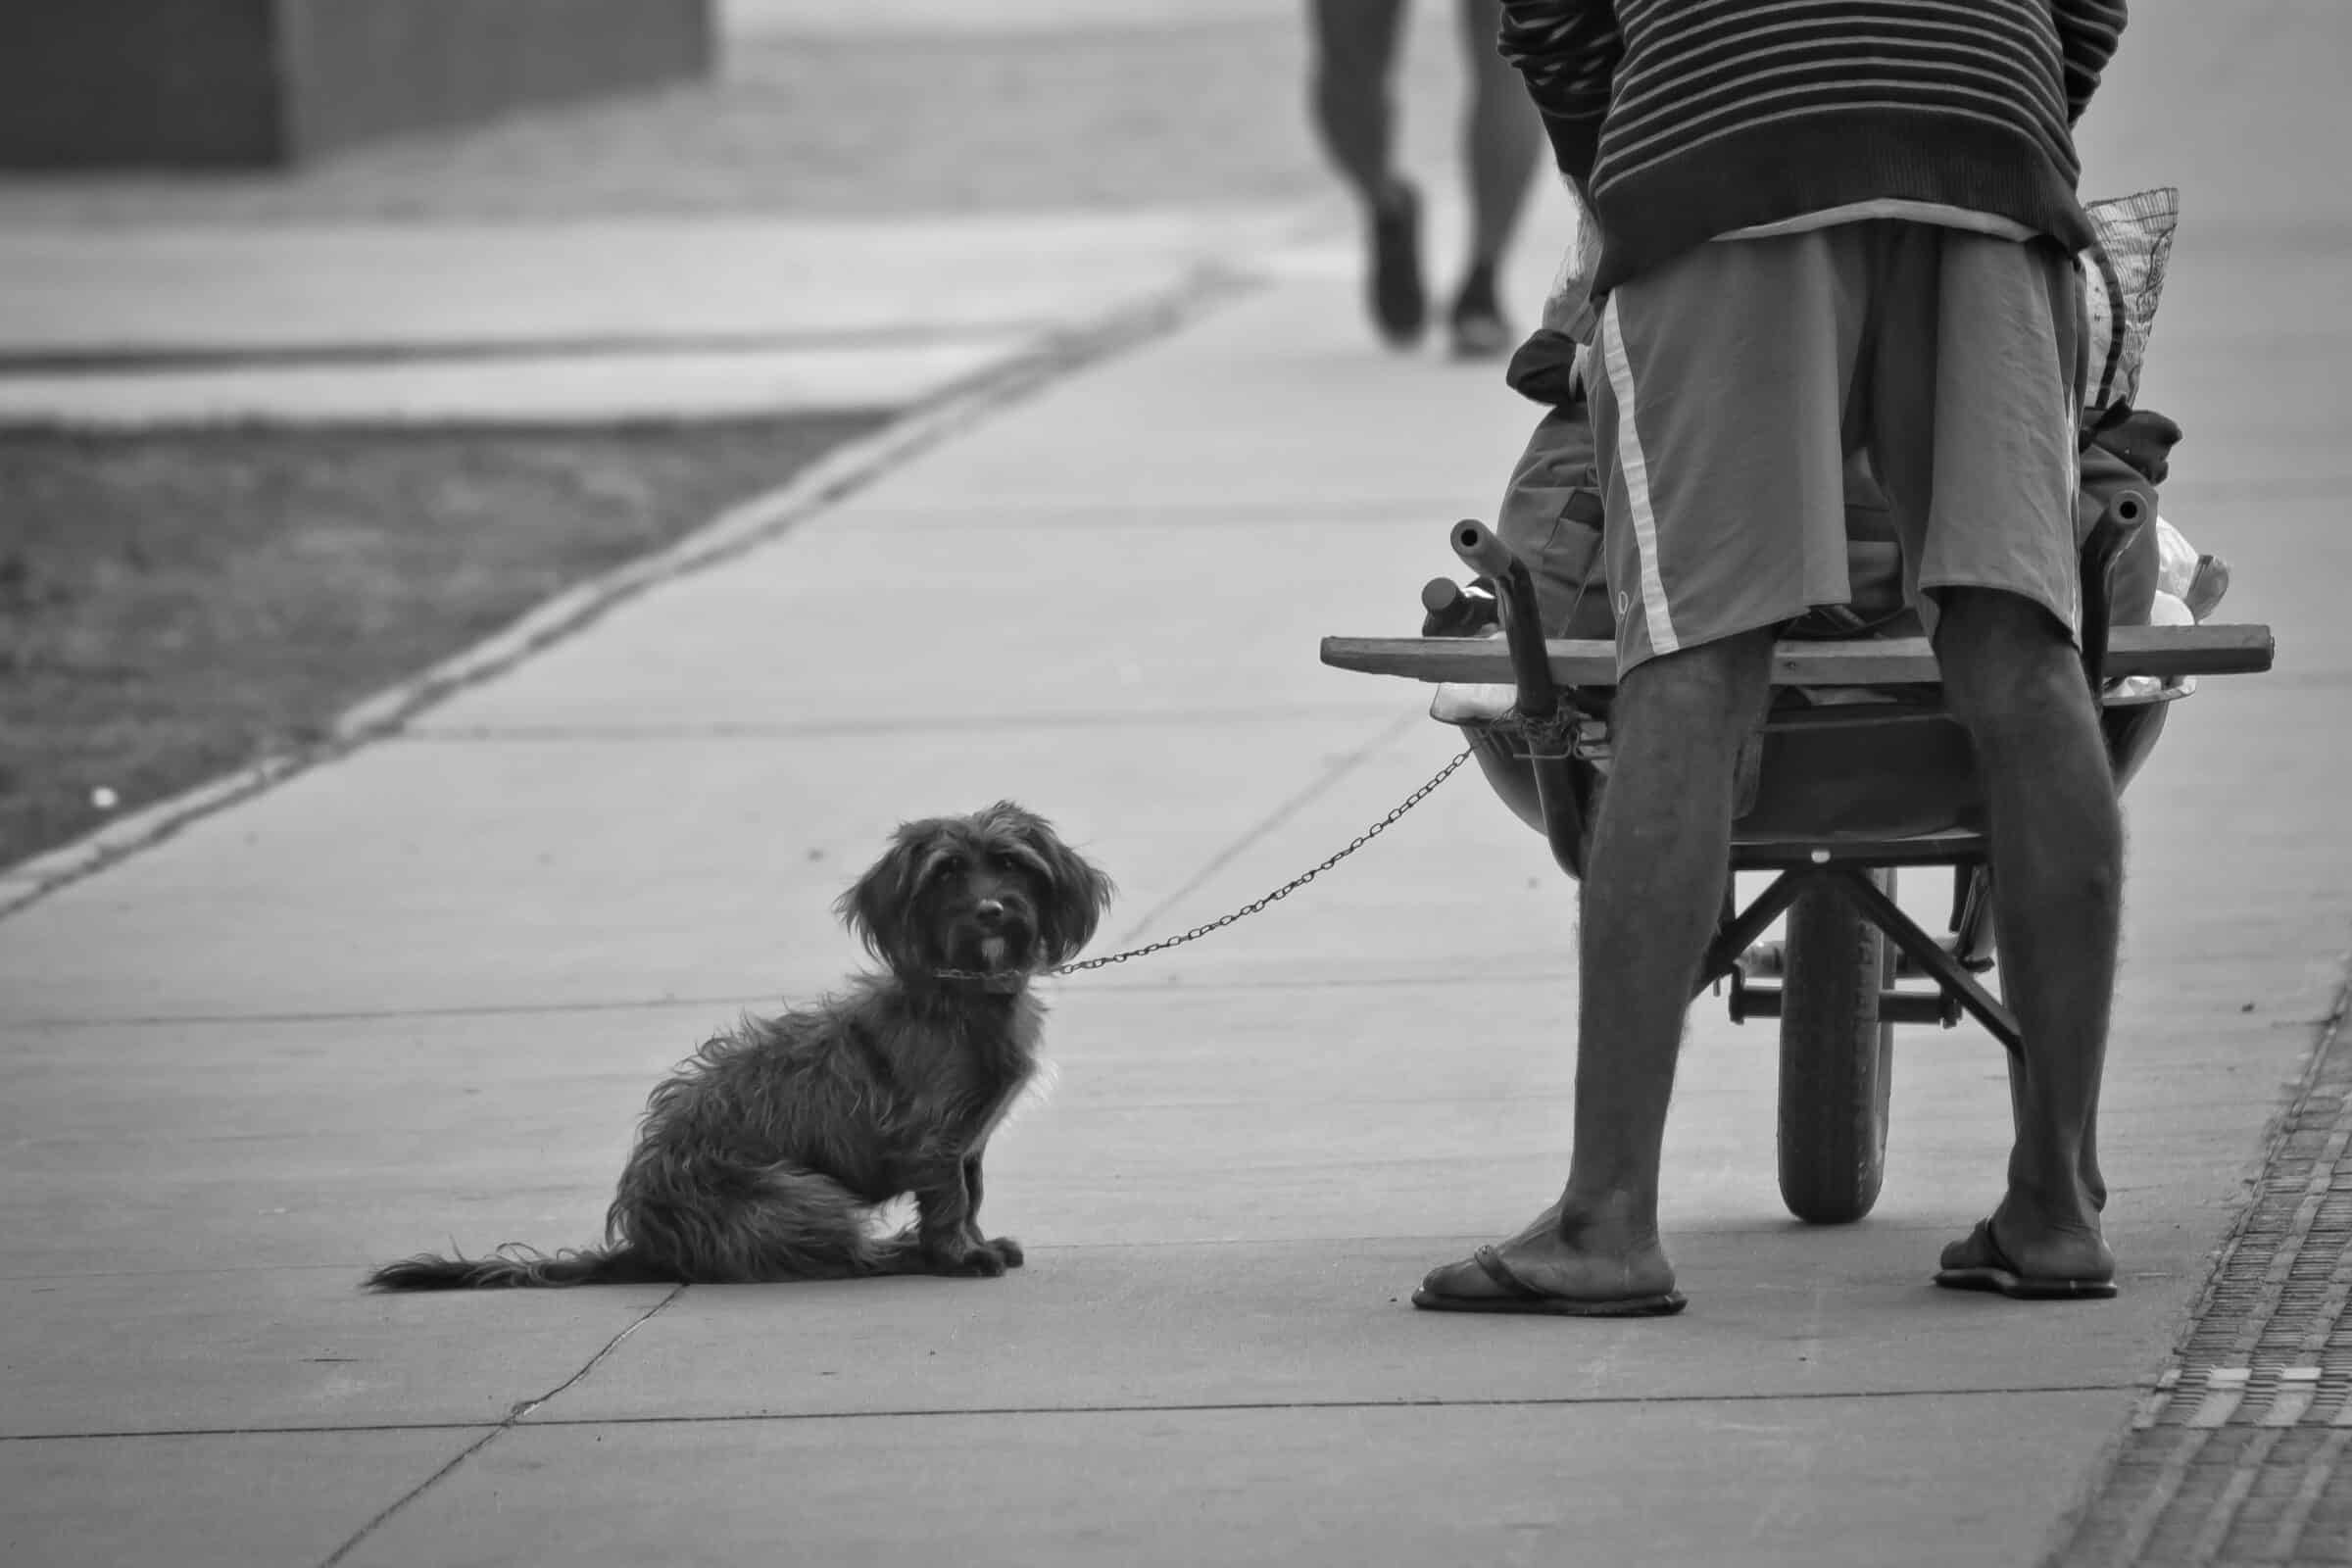 Small dog chained to loaded wheelbarrow sits on sidewalk and looks at us. Man in sandals with back towards us.